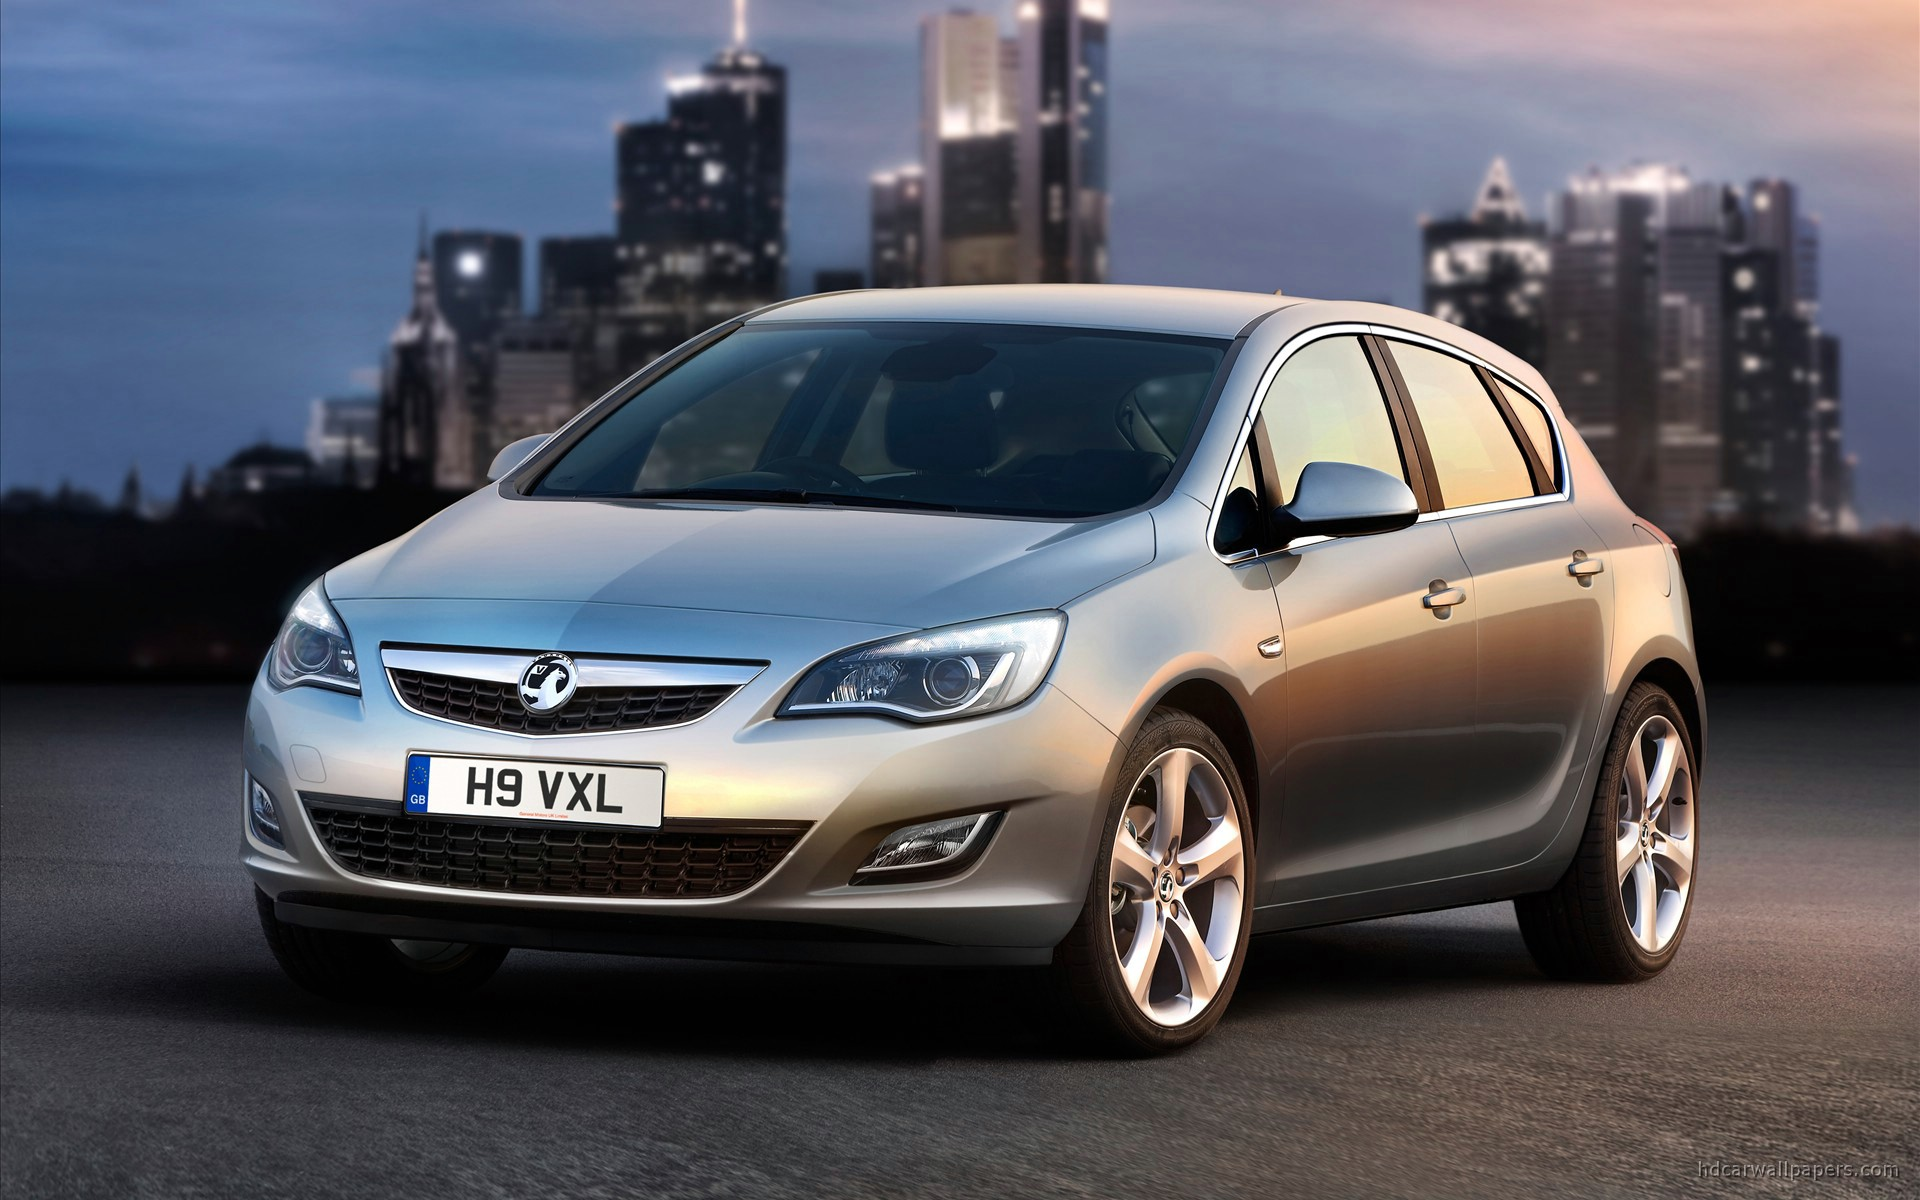 2010 vauxhall astra wallpaper hd car wallpapers id 1283. Black Bedroom Furniture Sets. Home Design Ideas